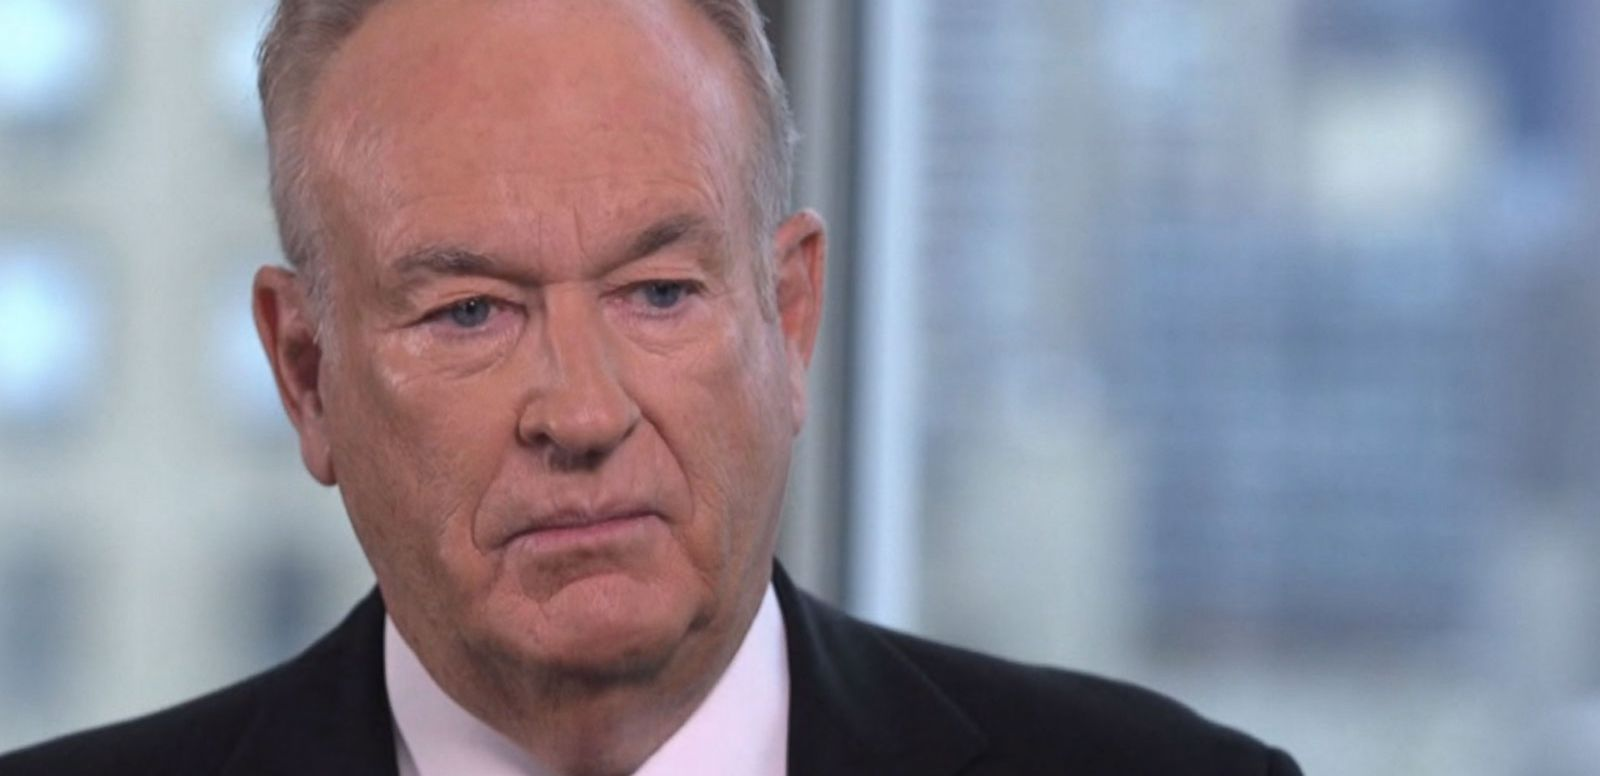 VIDEO: Bill O'Reilly on New Book 'Killing Reagan'